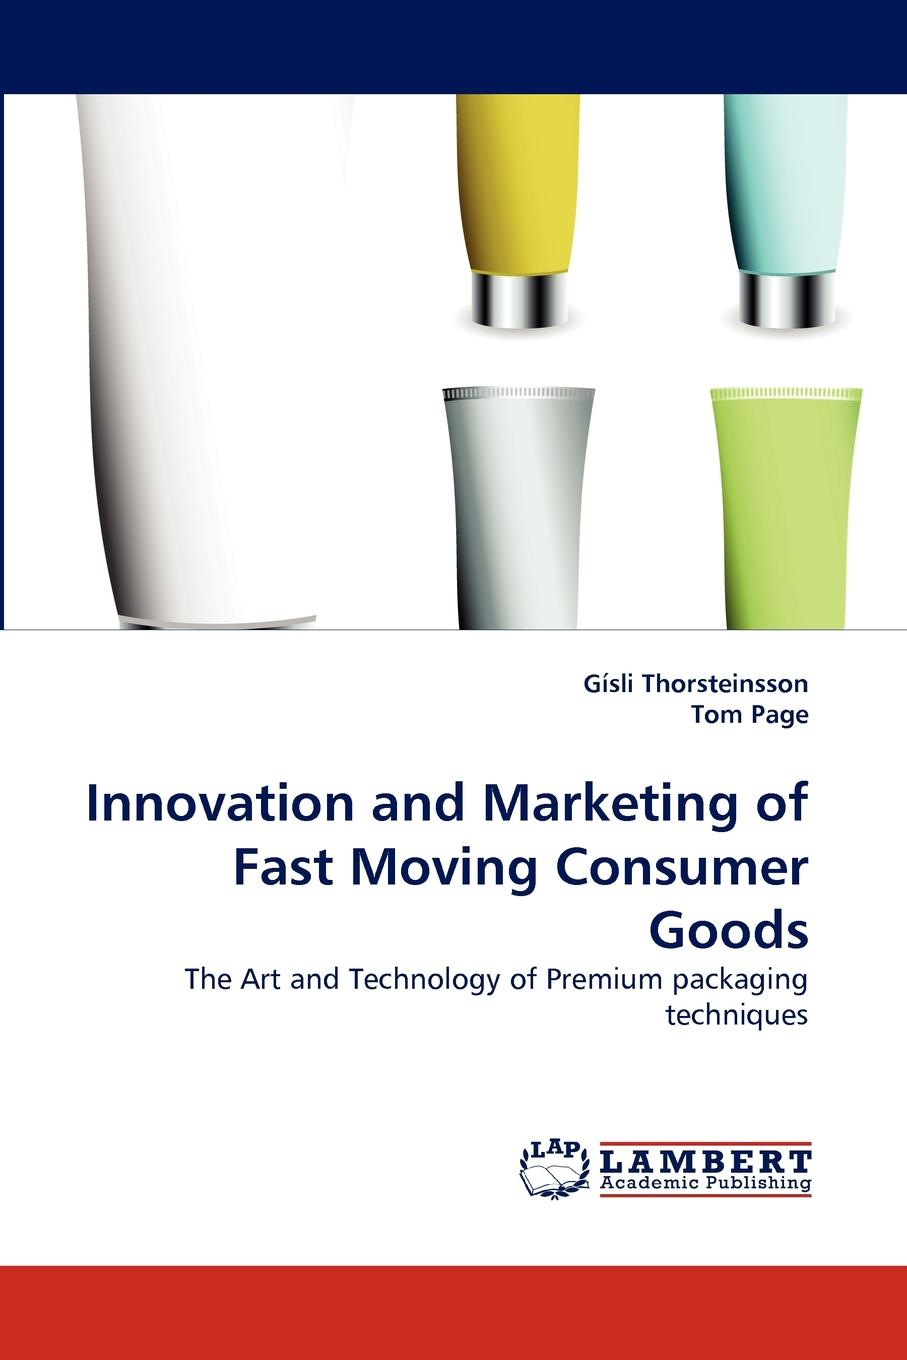 Gisli Thorsteinsson, Tom Page Innovation and Marketing of Fast Moving Consumer Goods unique packaging